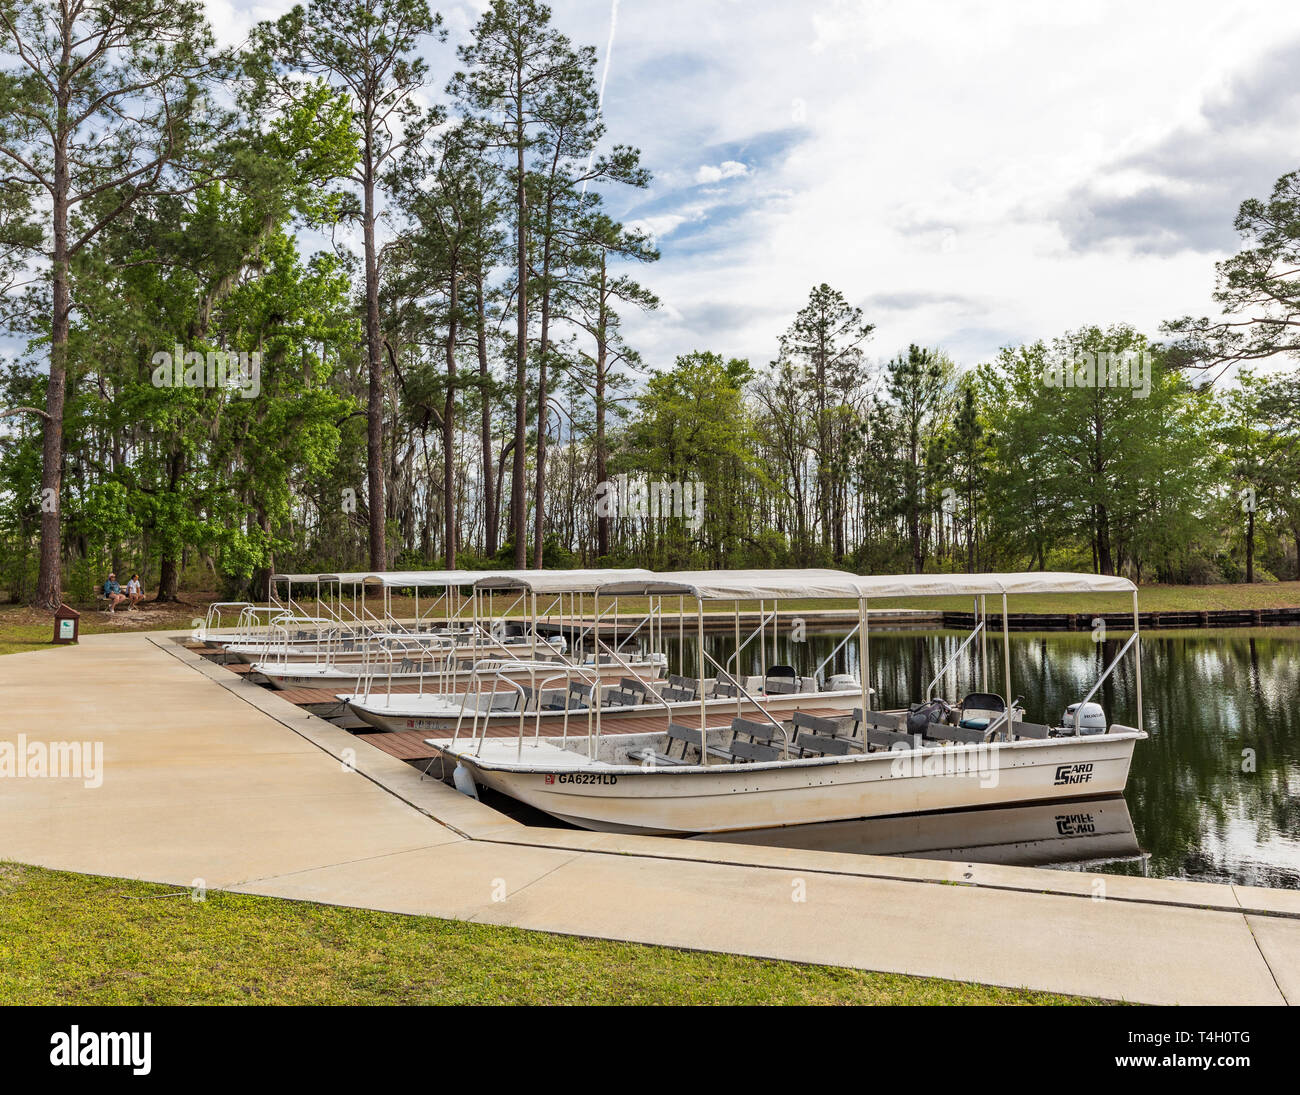 Okefenokee Swamp, Folkston, GA, USA-3/29/19: The canal at eastern entrance to the swamp, with skiffs at dock, and two women in background. Stock Photo